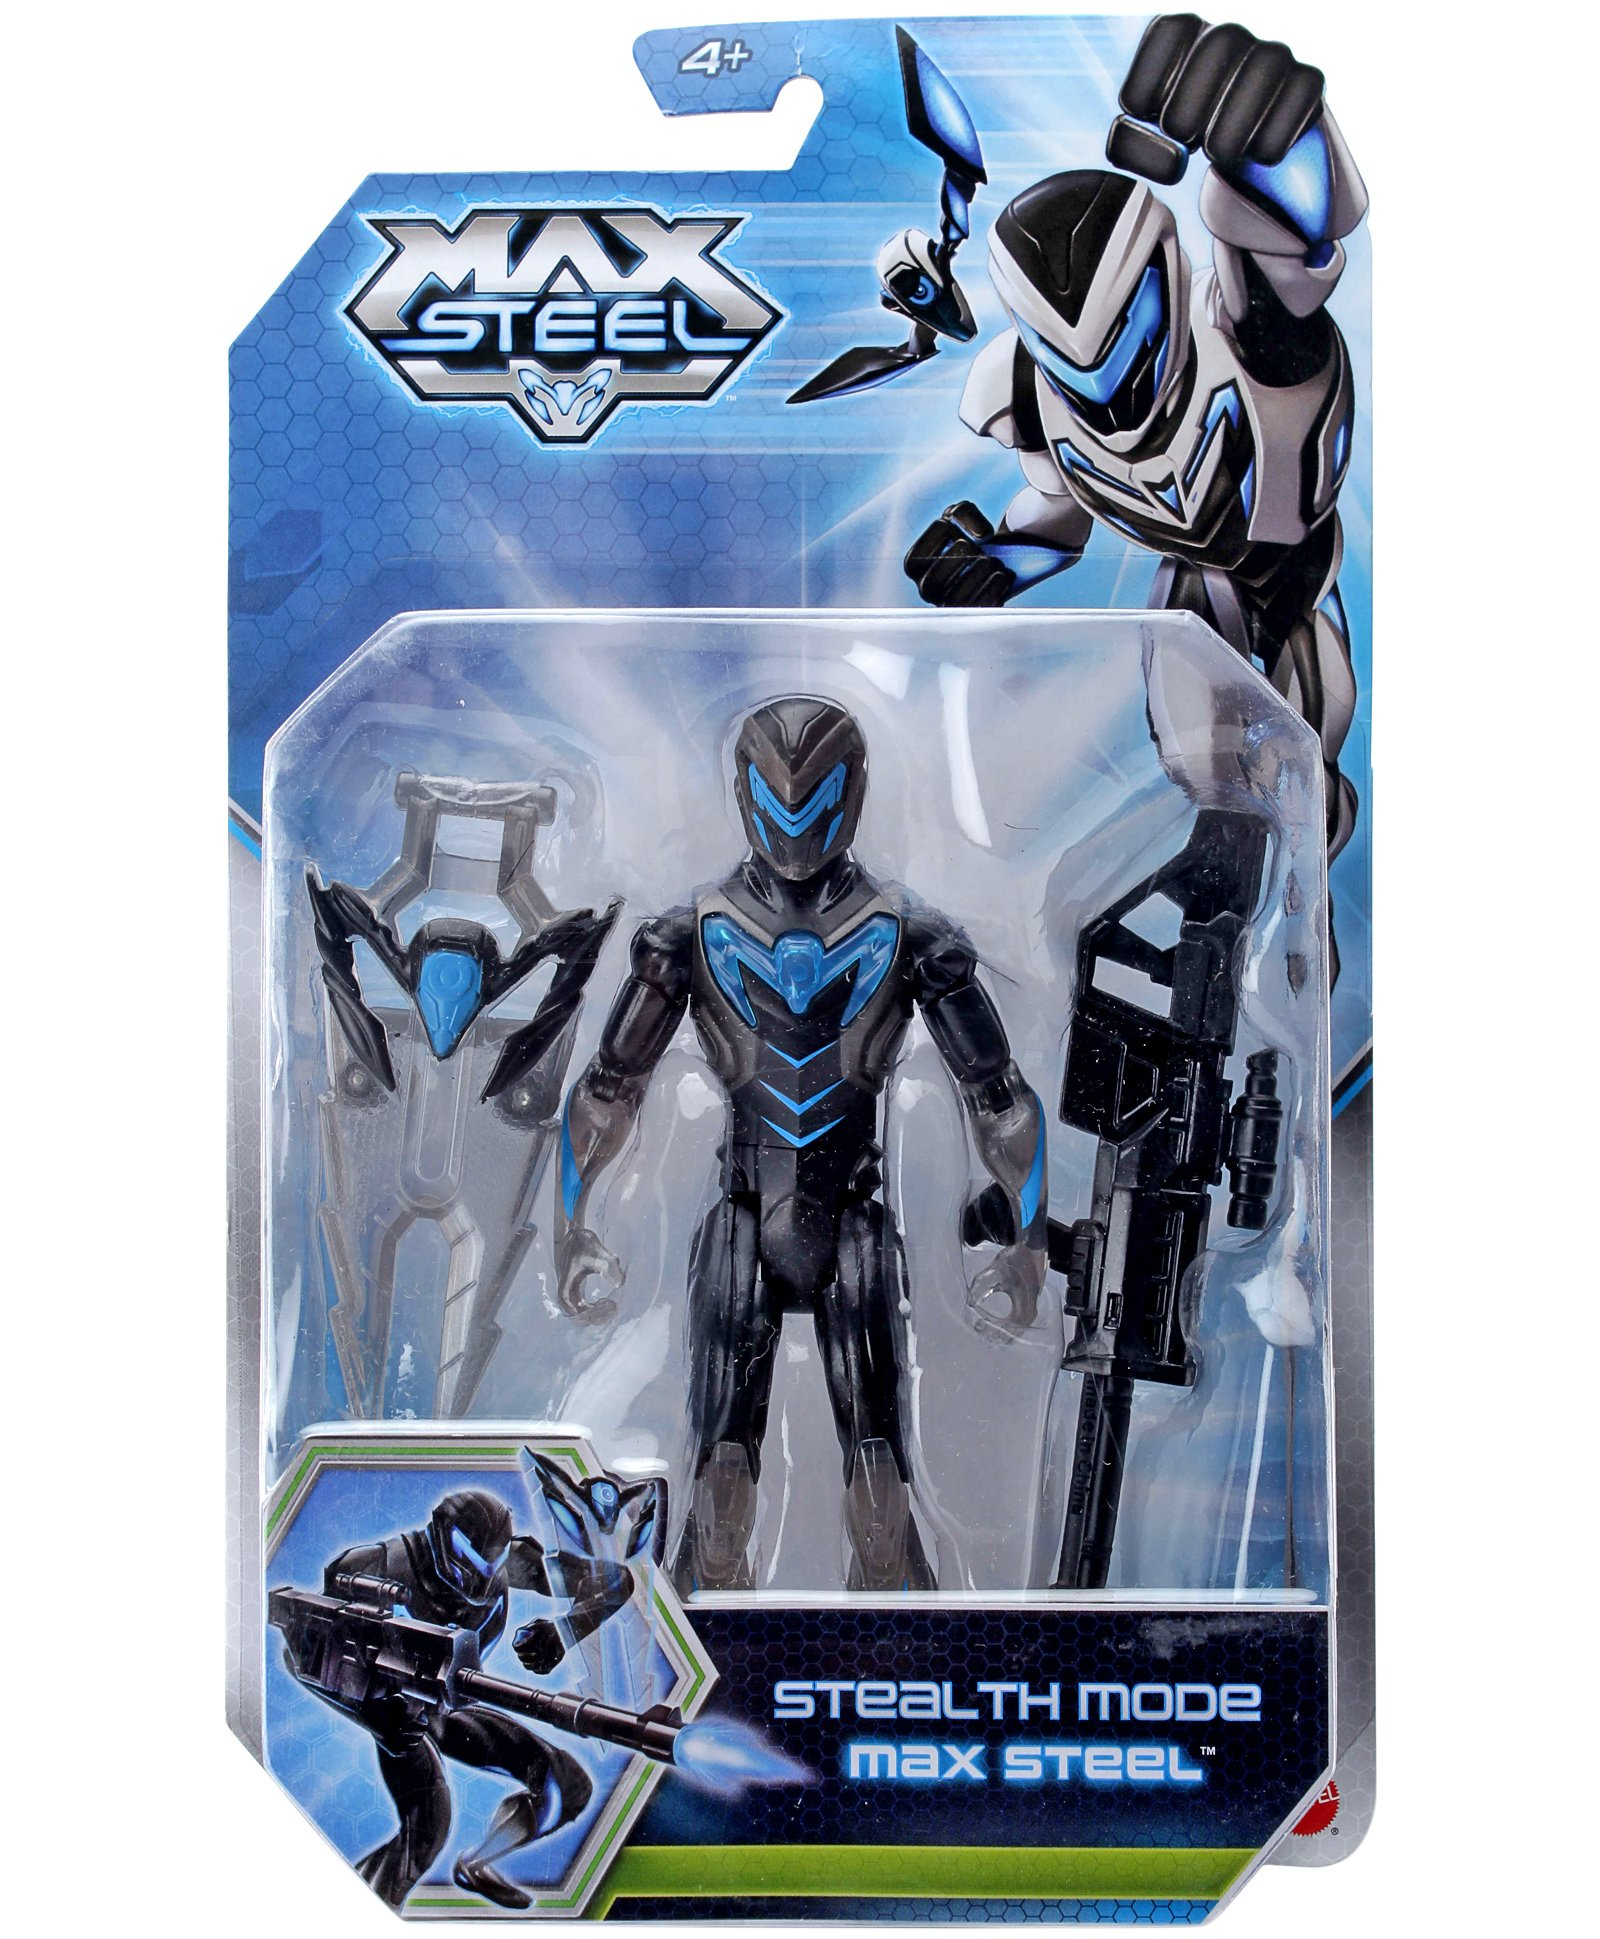 Max steel stealth mode figure assortment 6 inch online india buy